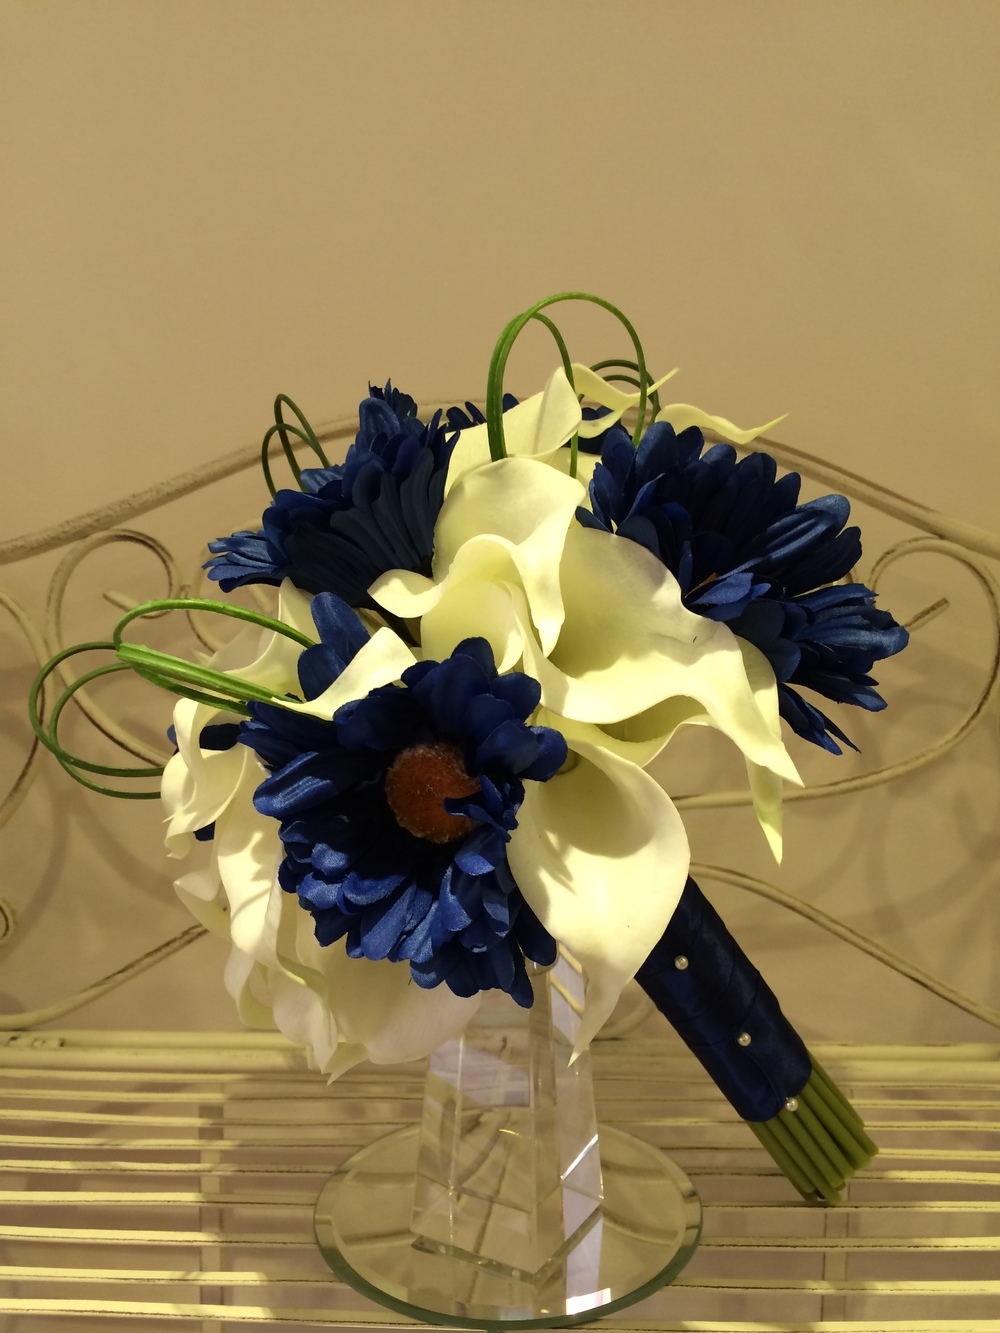 Brides Handtied Bouquet With Ivory Calla Lilies, Royal Blue Gerberas & Looped Over Beargrass